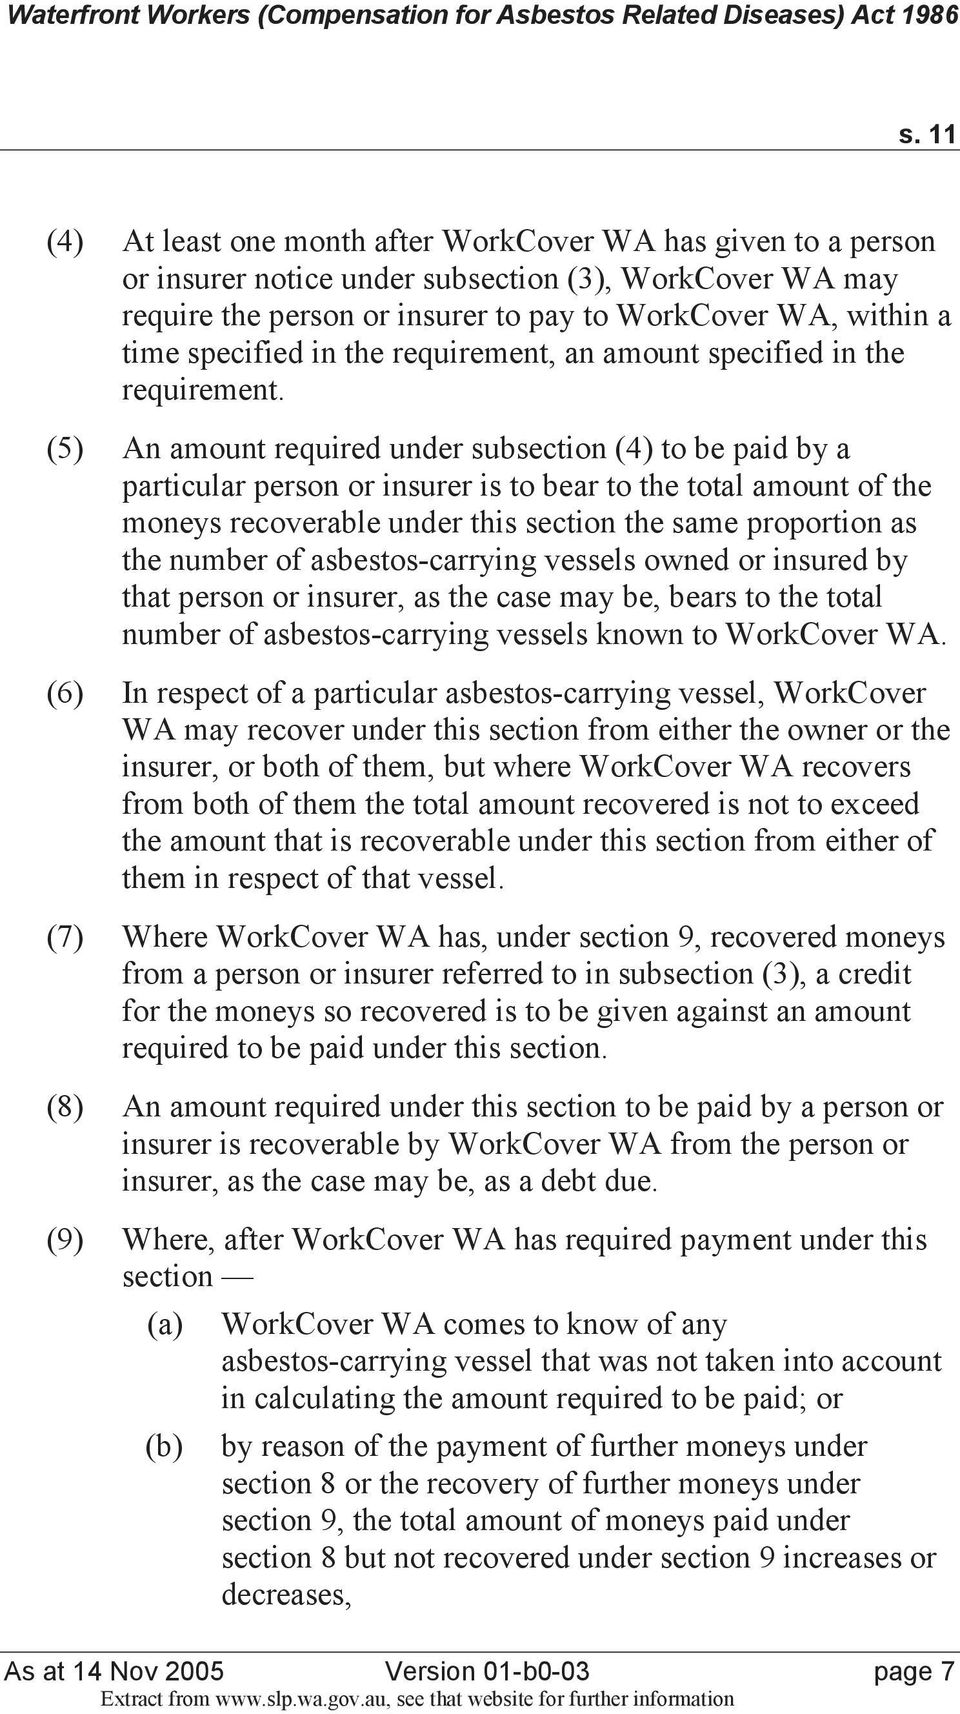 (5) An amount required under subsection (4) to be paid by a particular person or insurer is to bear to the total amount of the moneys recoverable under this section the same proportion as the number